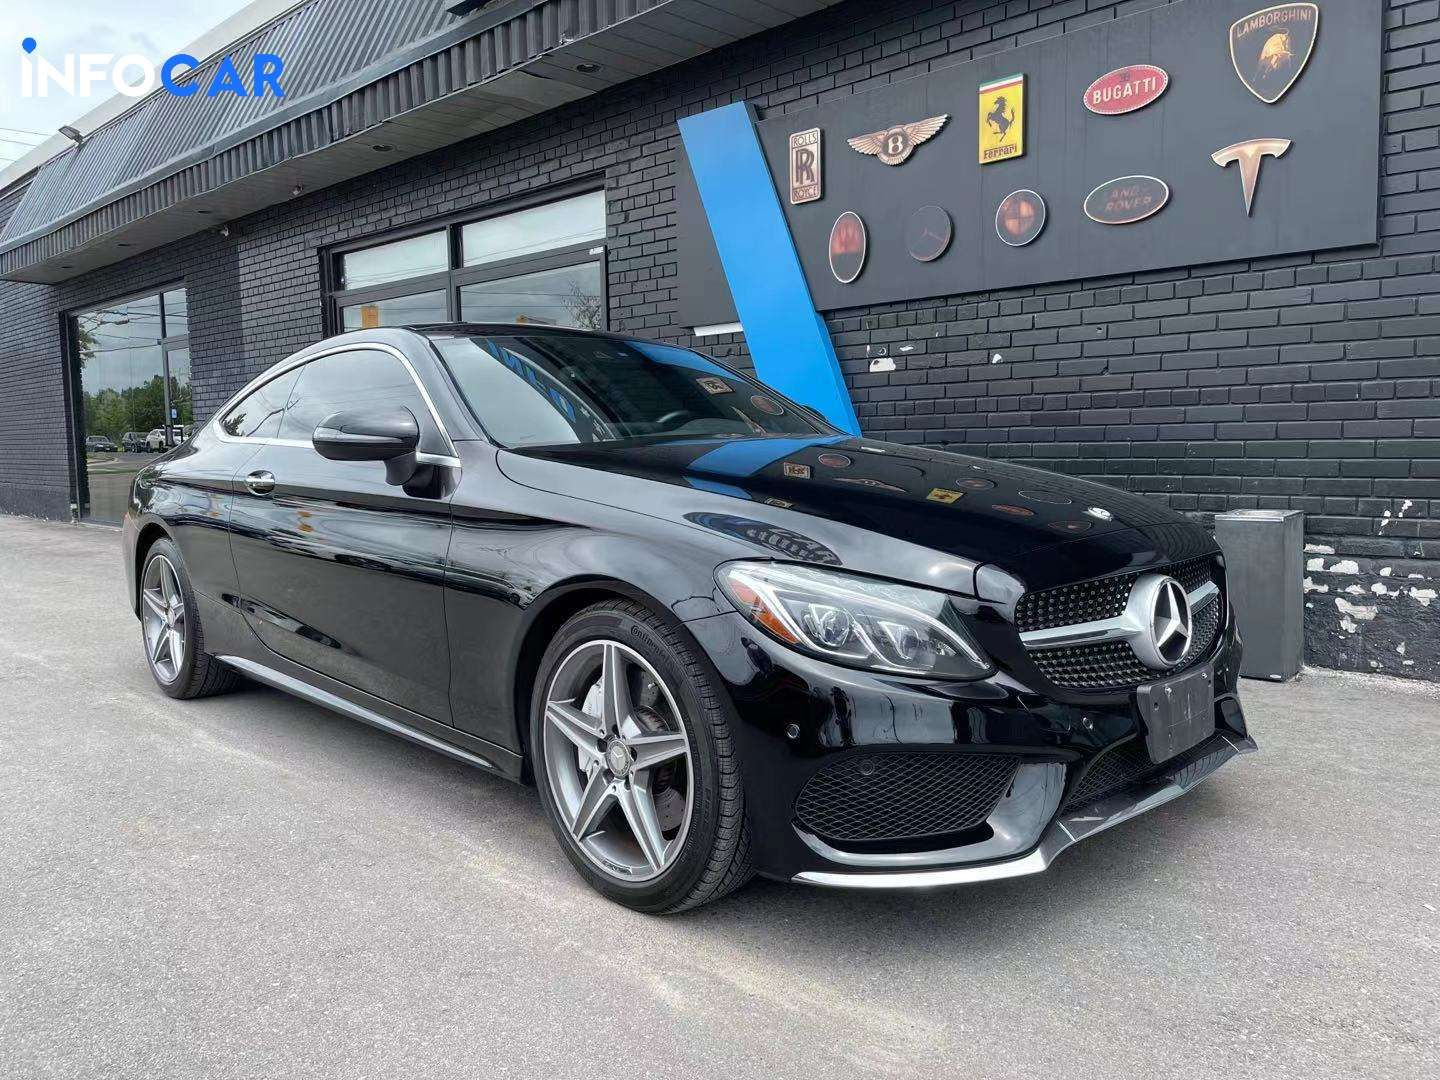 2017 Mercedes-Benz C-Class 300 - INFOCAR - Toronto's Most Comprehensive New and Used Auto Trading Platform